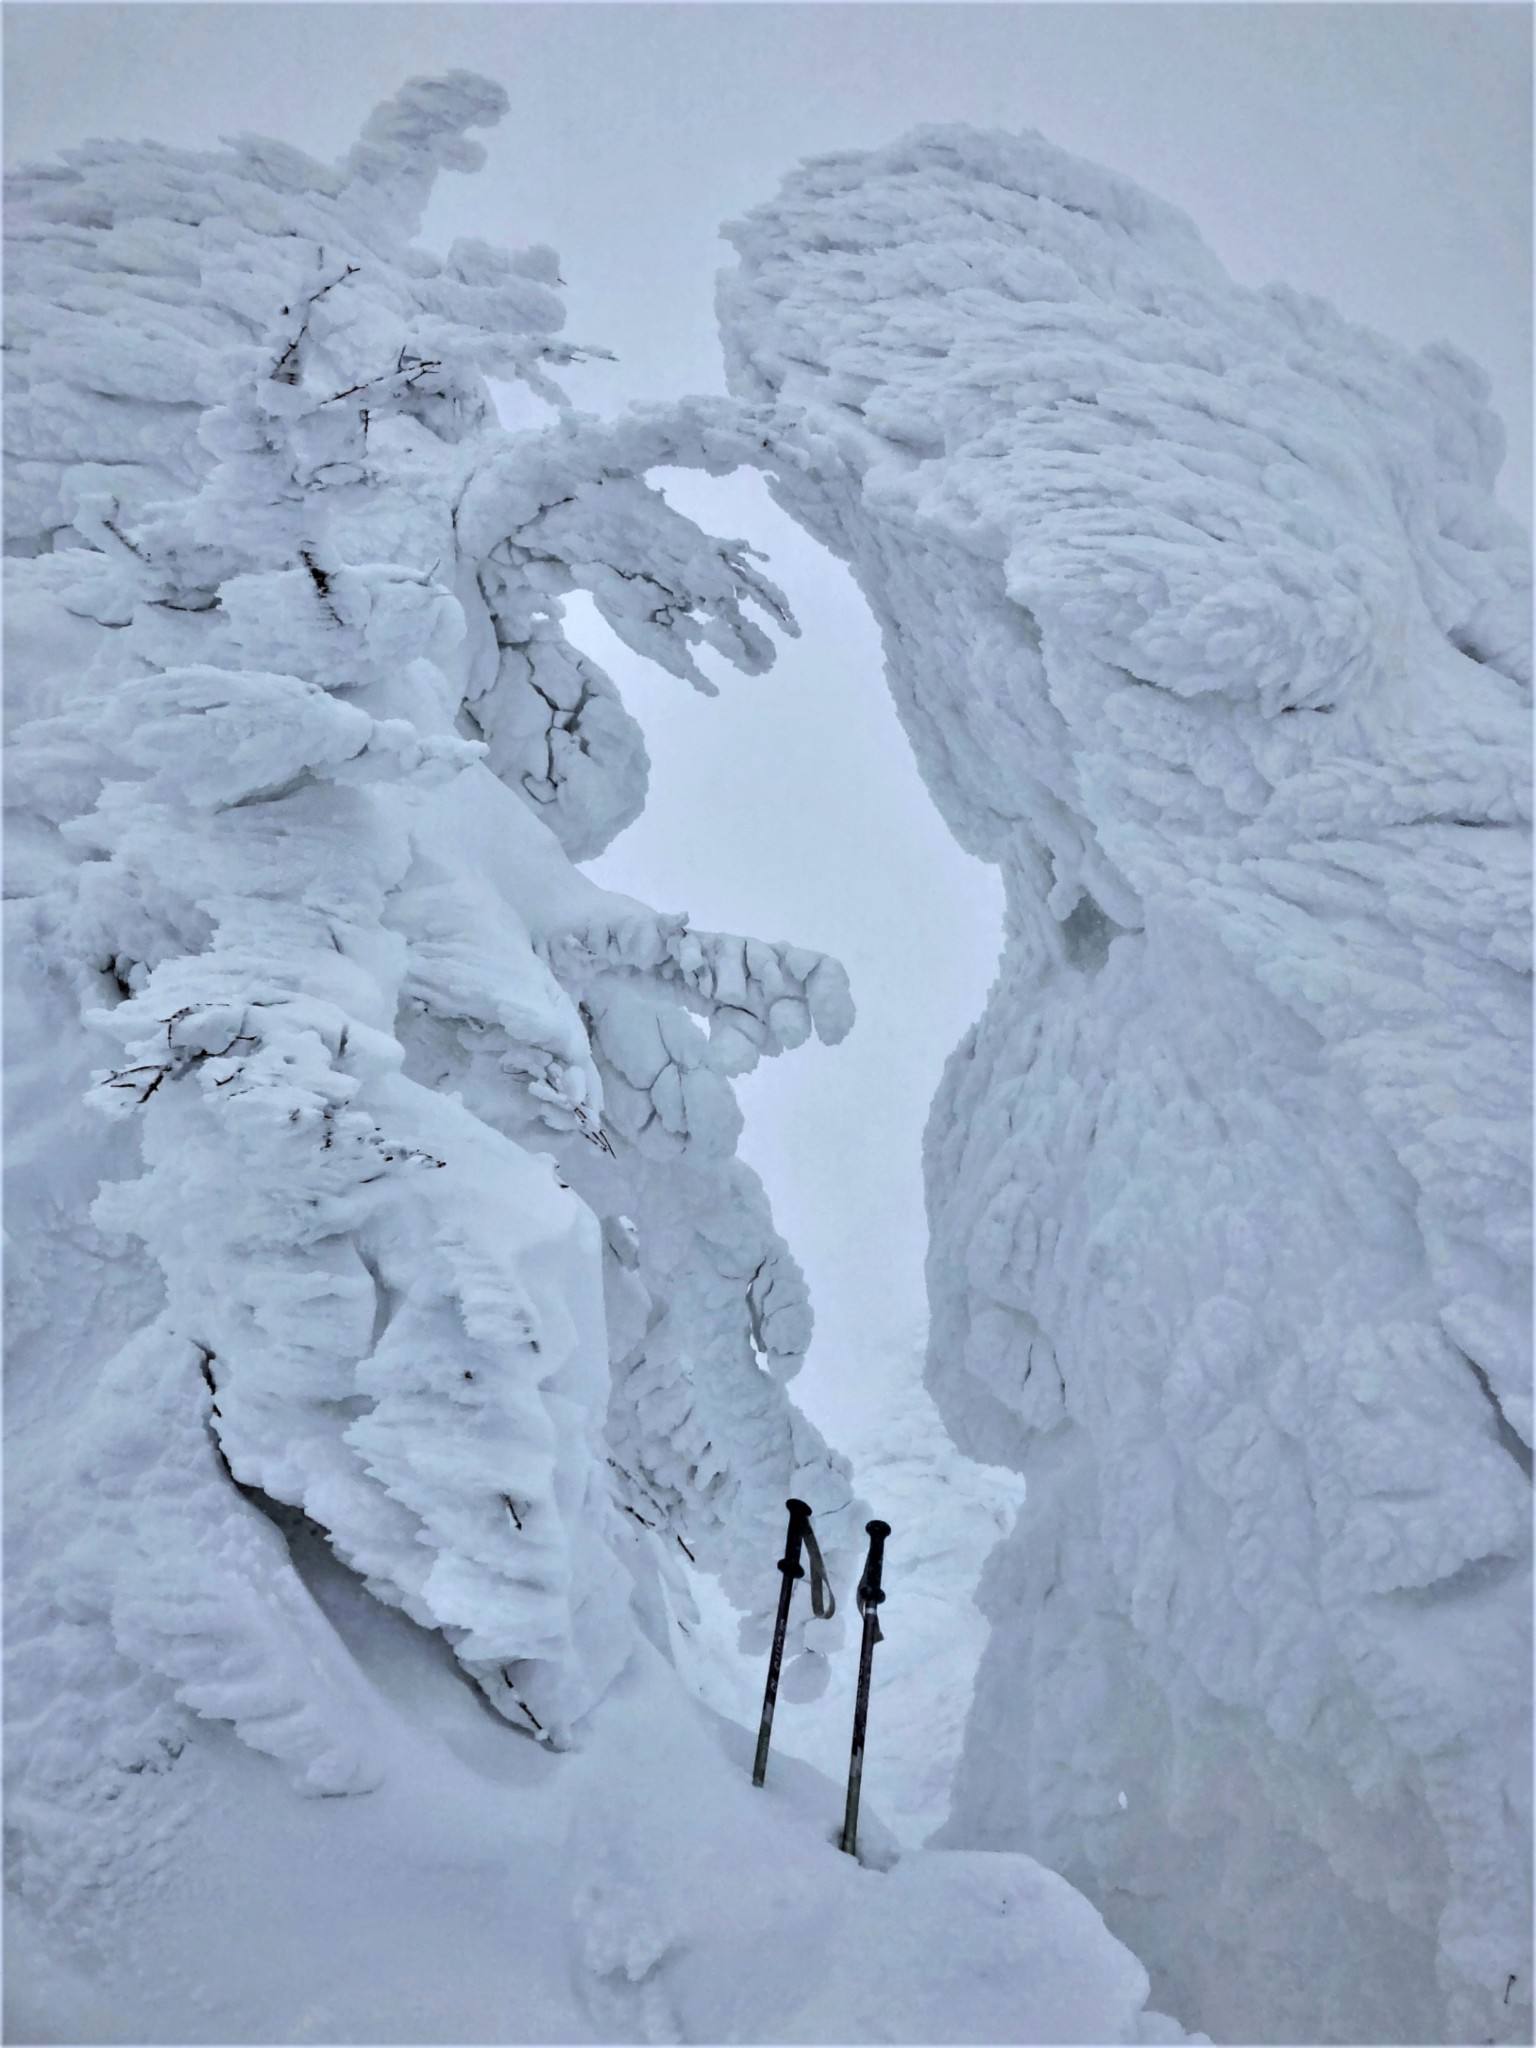 Two massive snow monsters fighting over a pair of ski poles during a blizzard on Mount Zao in Yamagata, Japan.